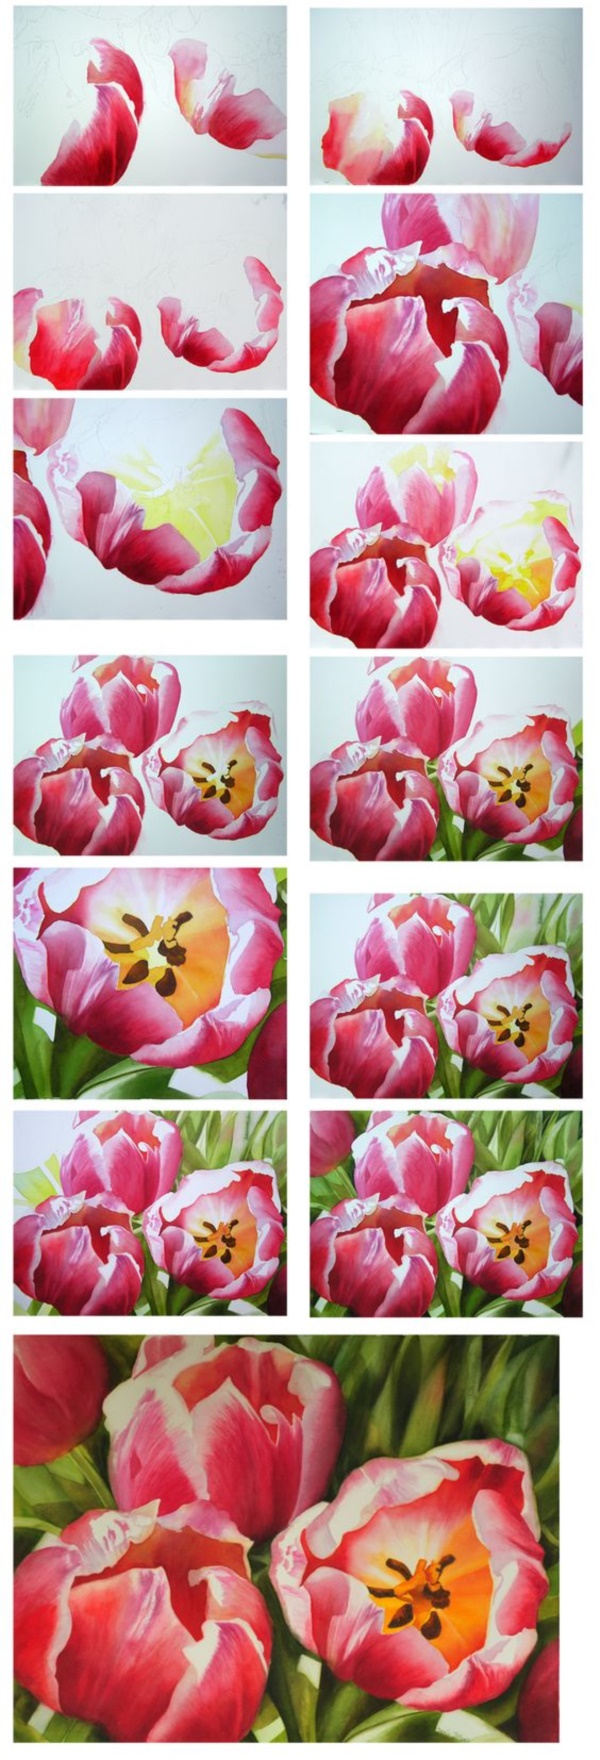 How To Draw A Flower Step By Step Image Guides